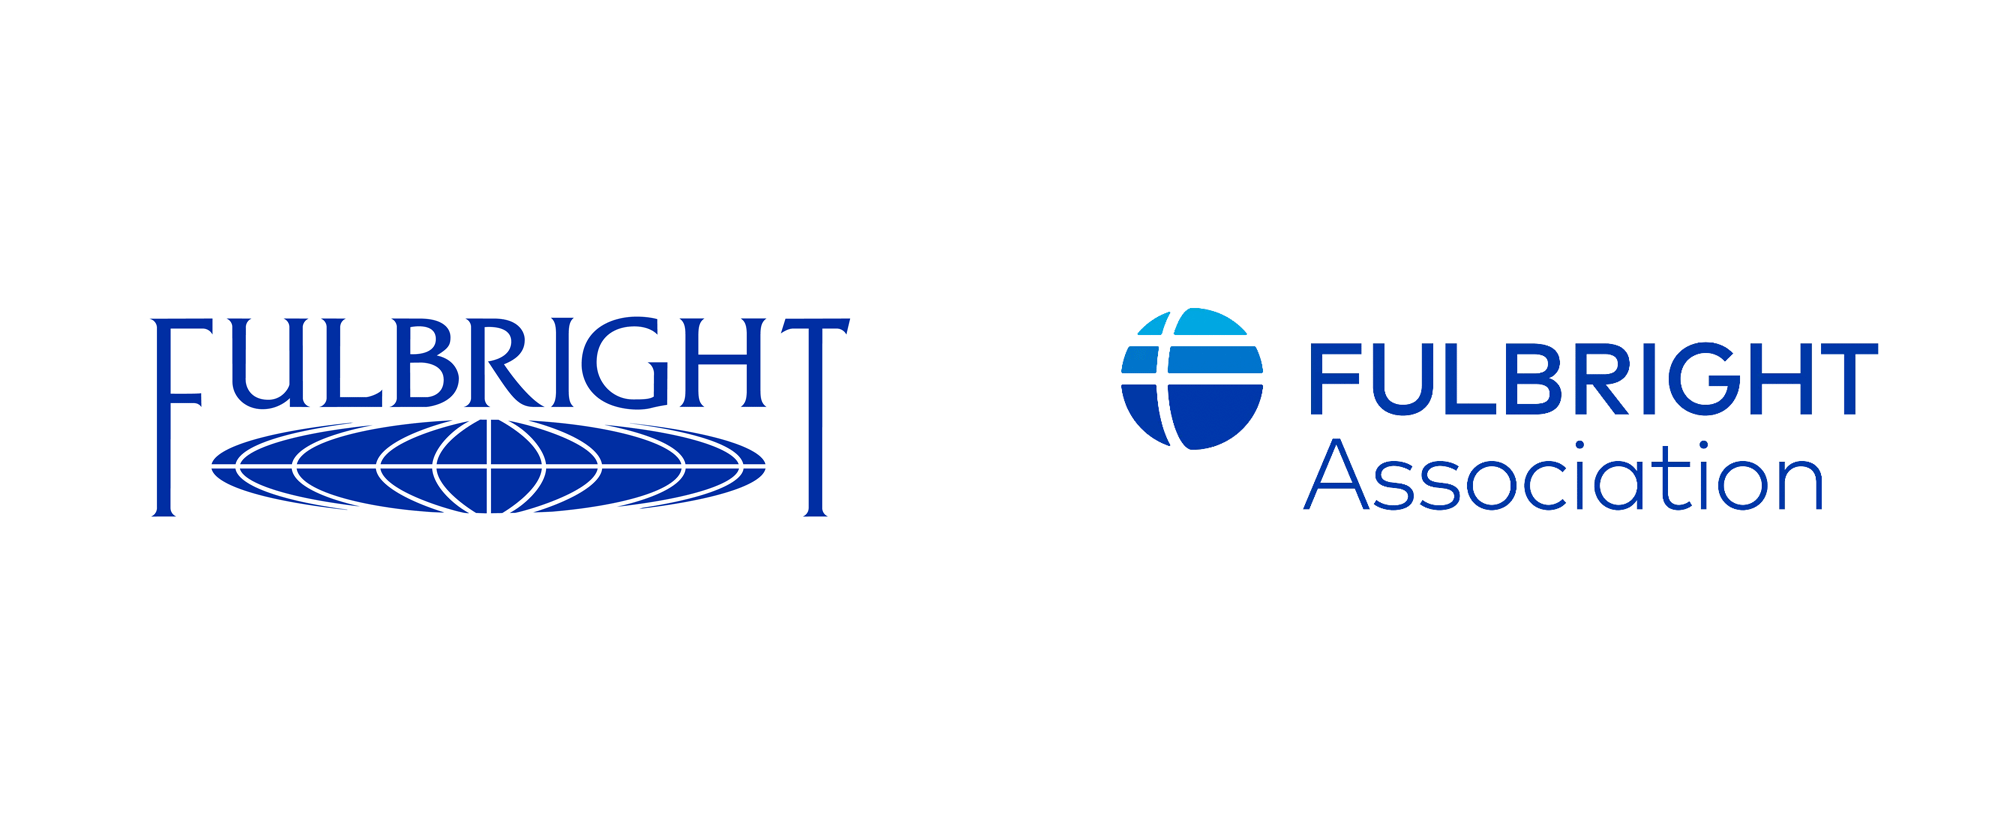 New Logo for Fulbright Association